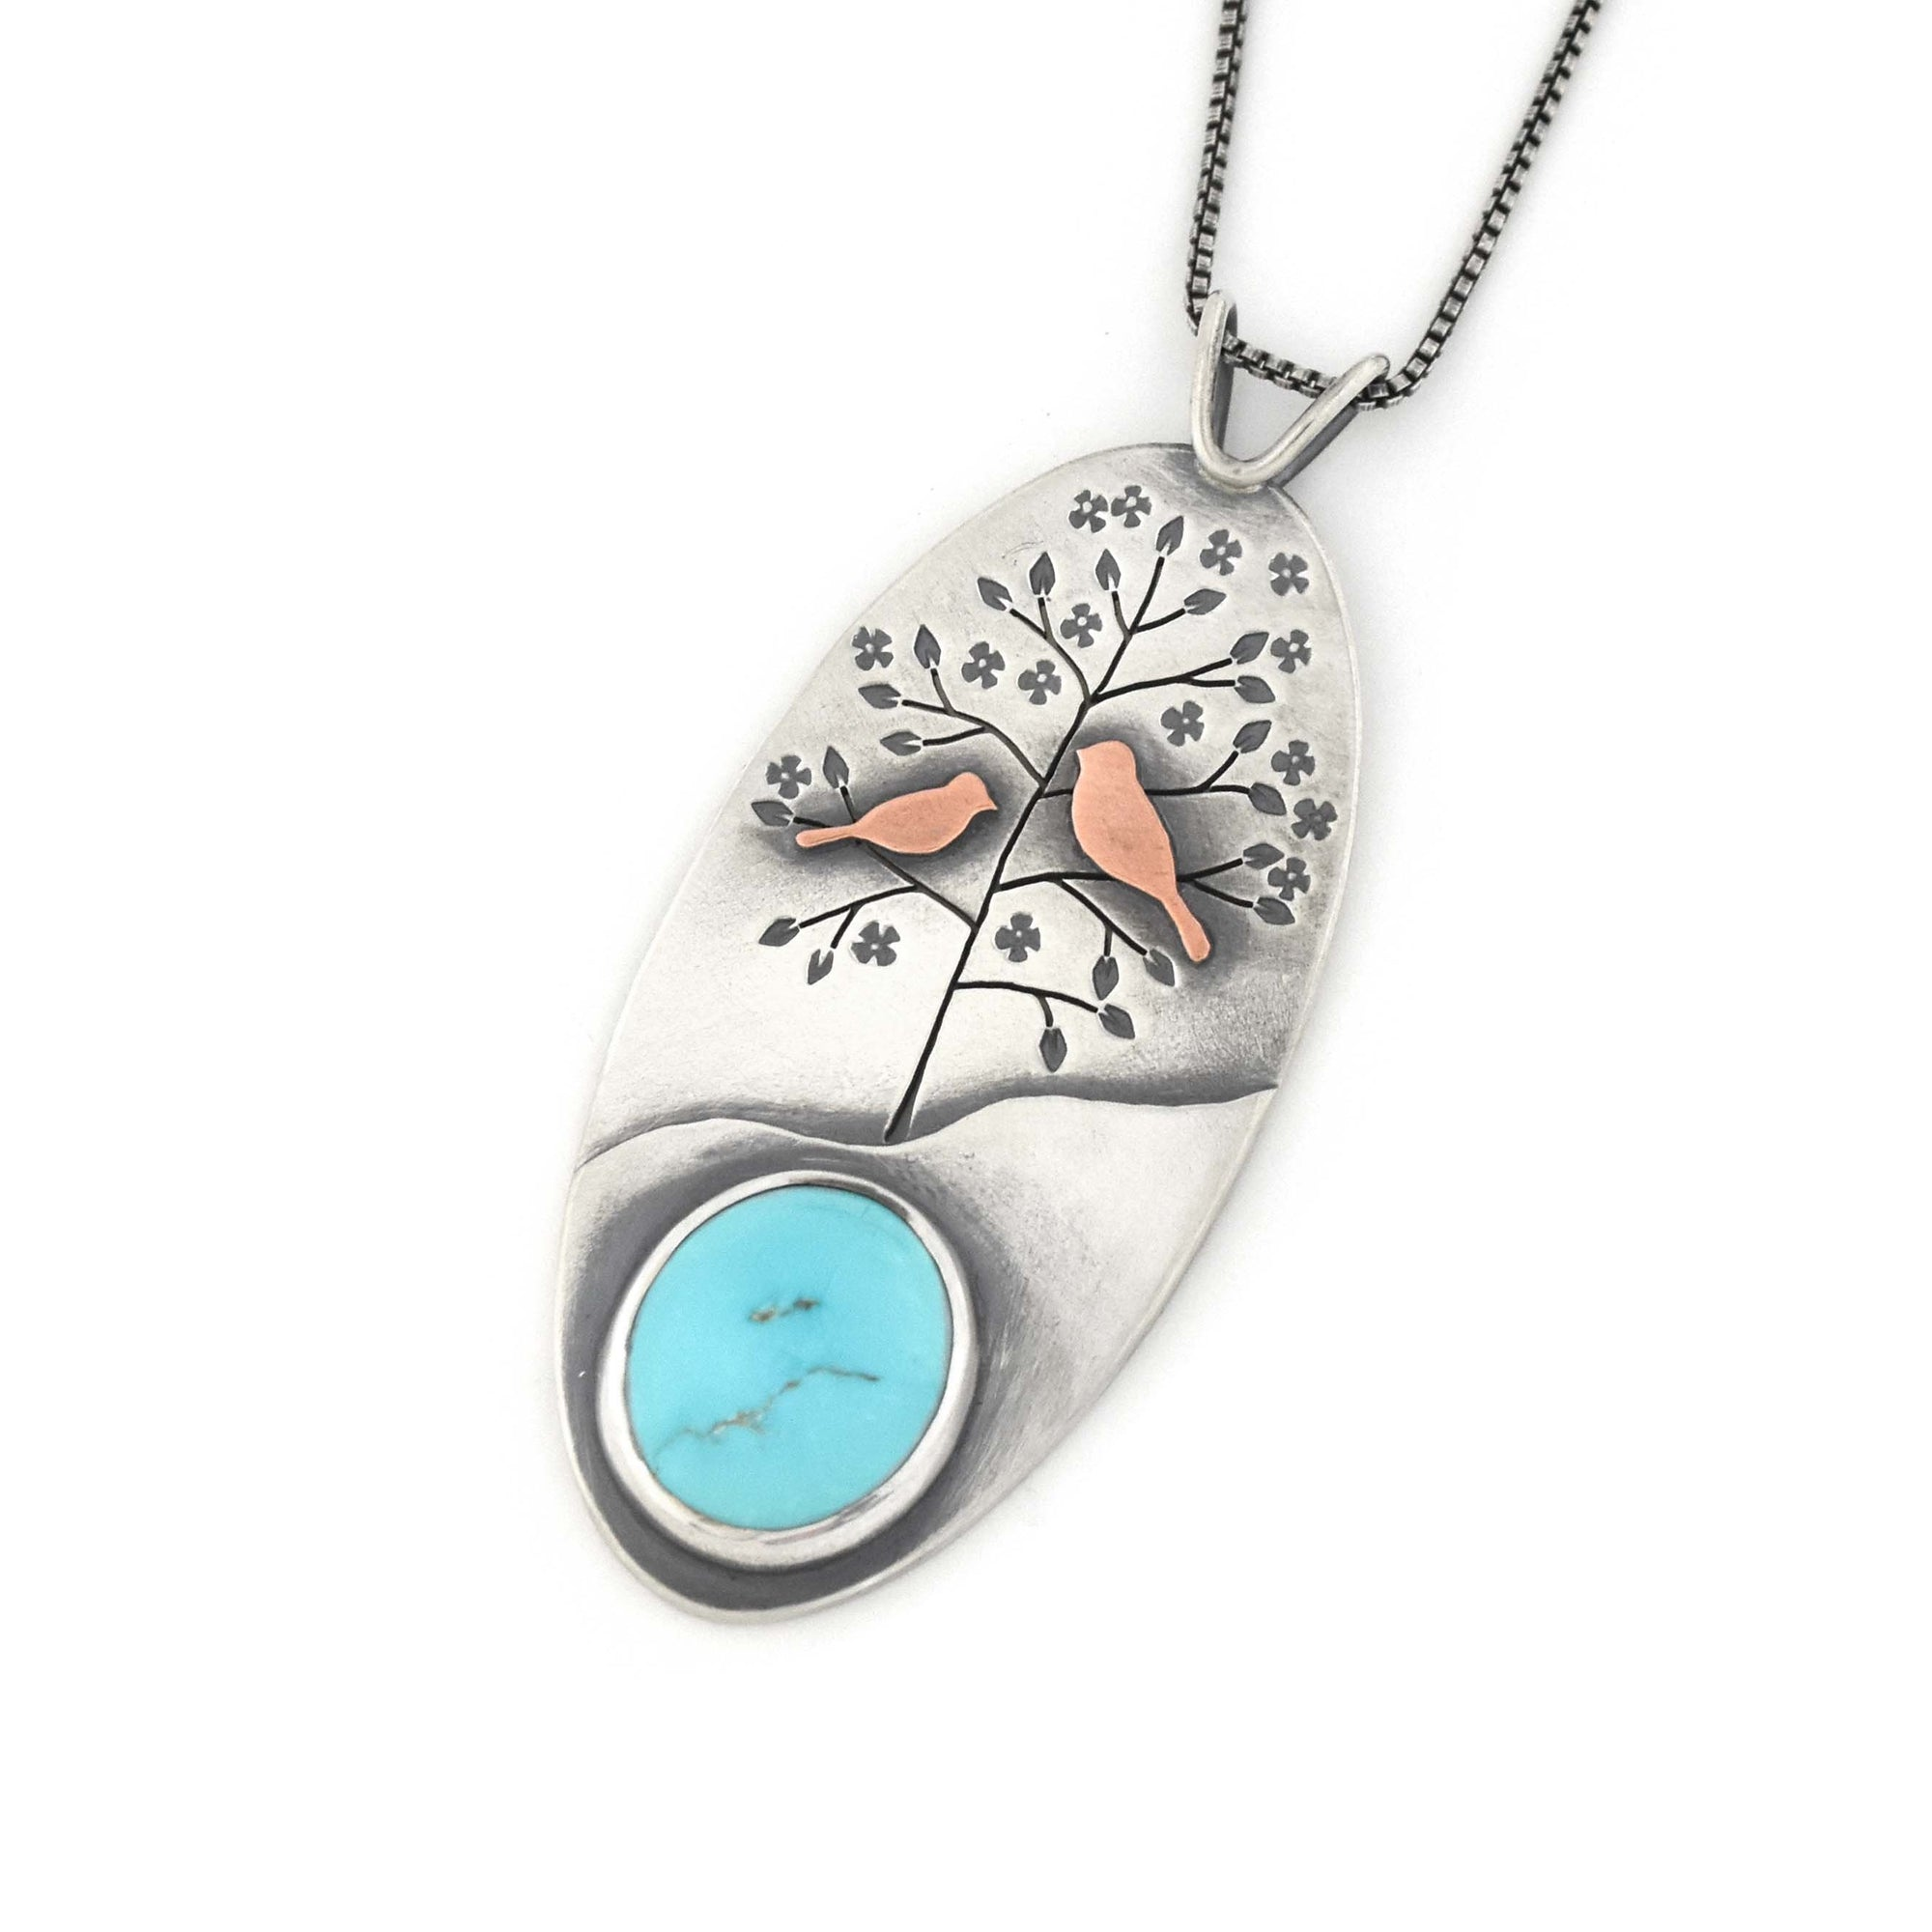 Nesting Spring Robins Turquoise Wonderland Pendant, Mixed Metal Pendant handmade by Beth Millner Jewelry